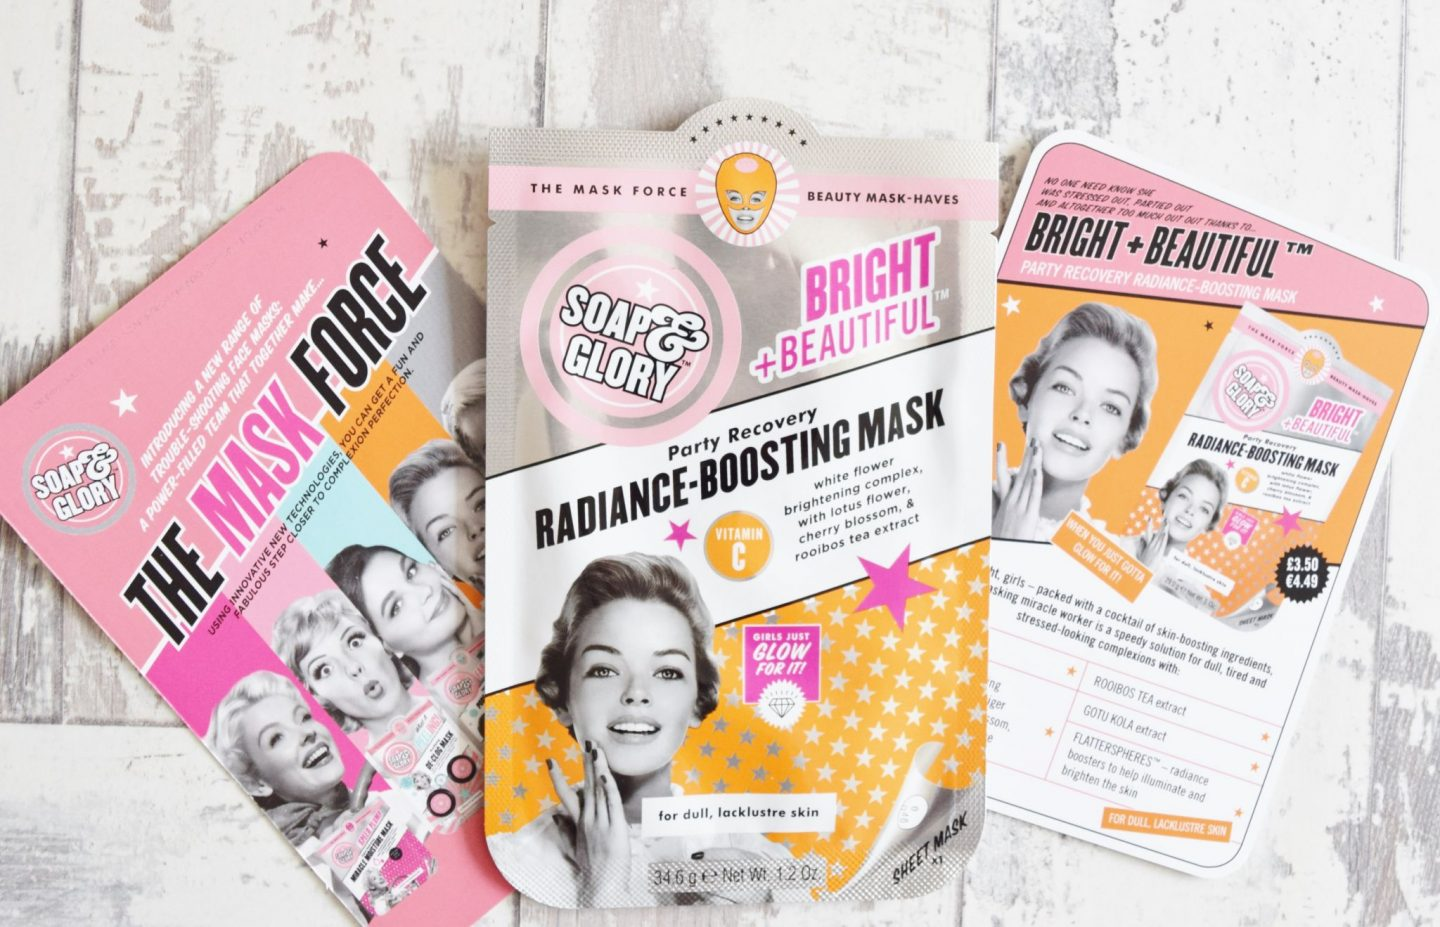 Soap & Glory Bright & Beautiful Party Recovery Radiance-Boosting Mask